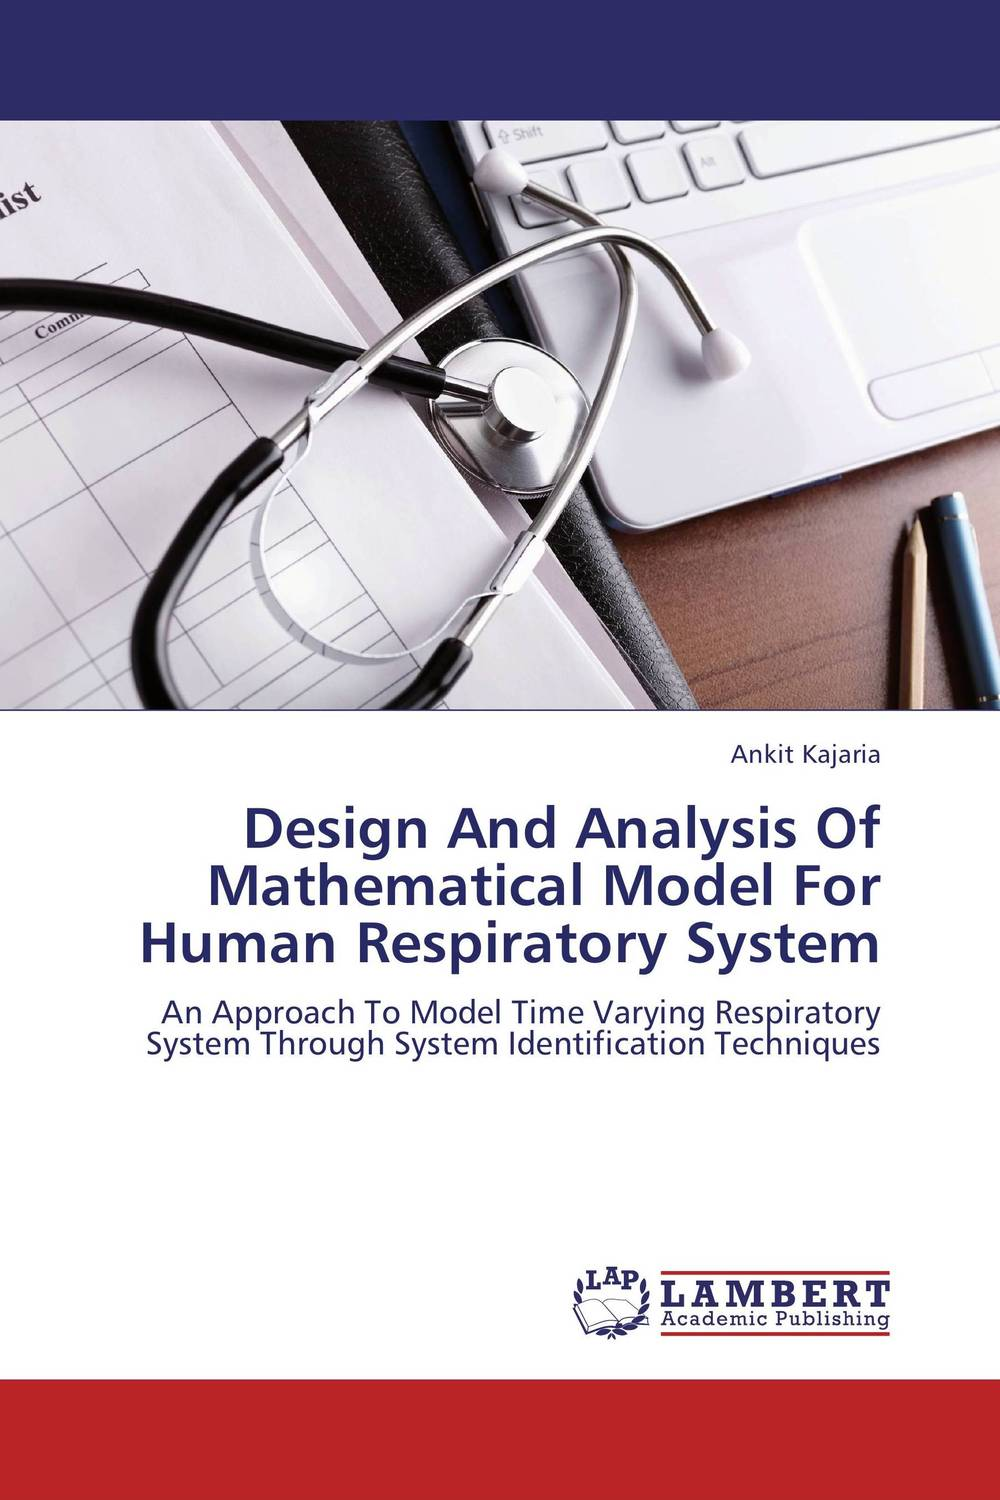 Design And Analysis Of Mathematical Model For Human Respiratory System human medicine anorectal anal anatomy of the digestive system model anorectal surgery